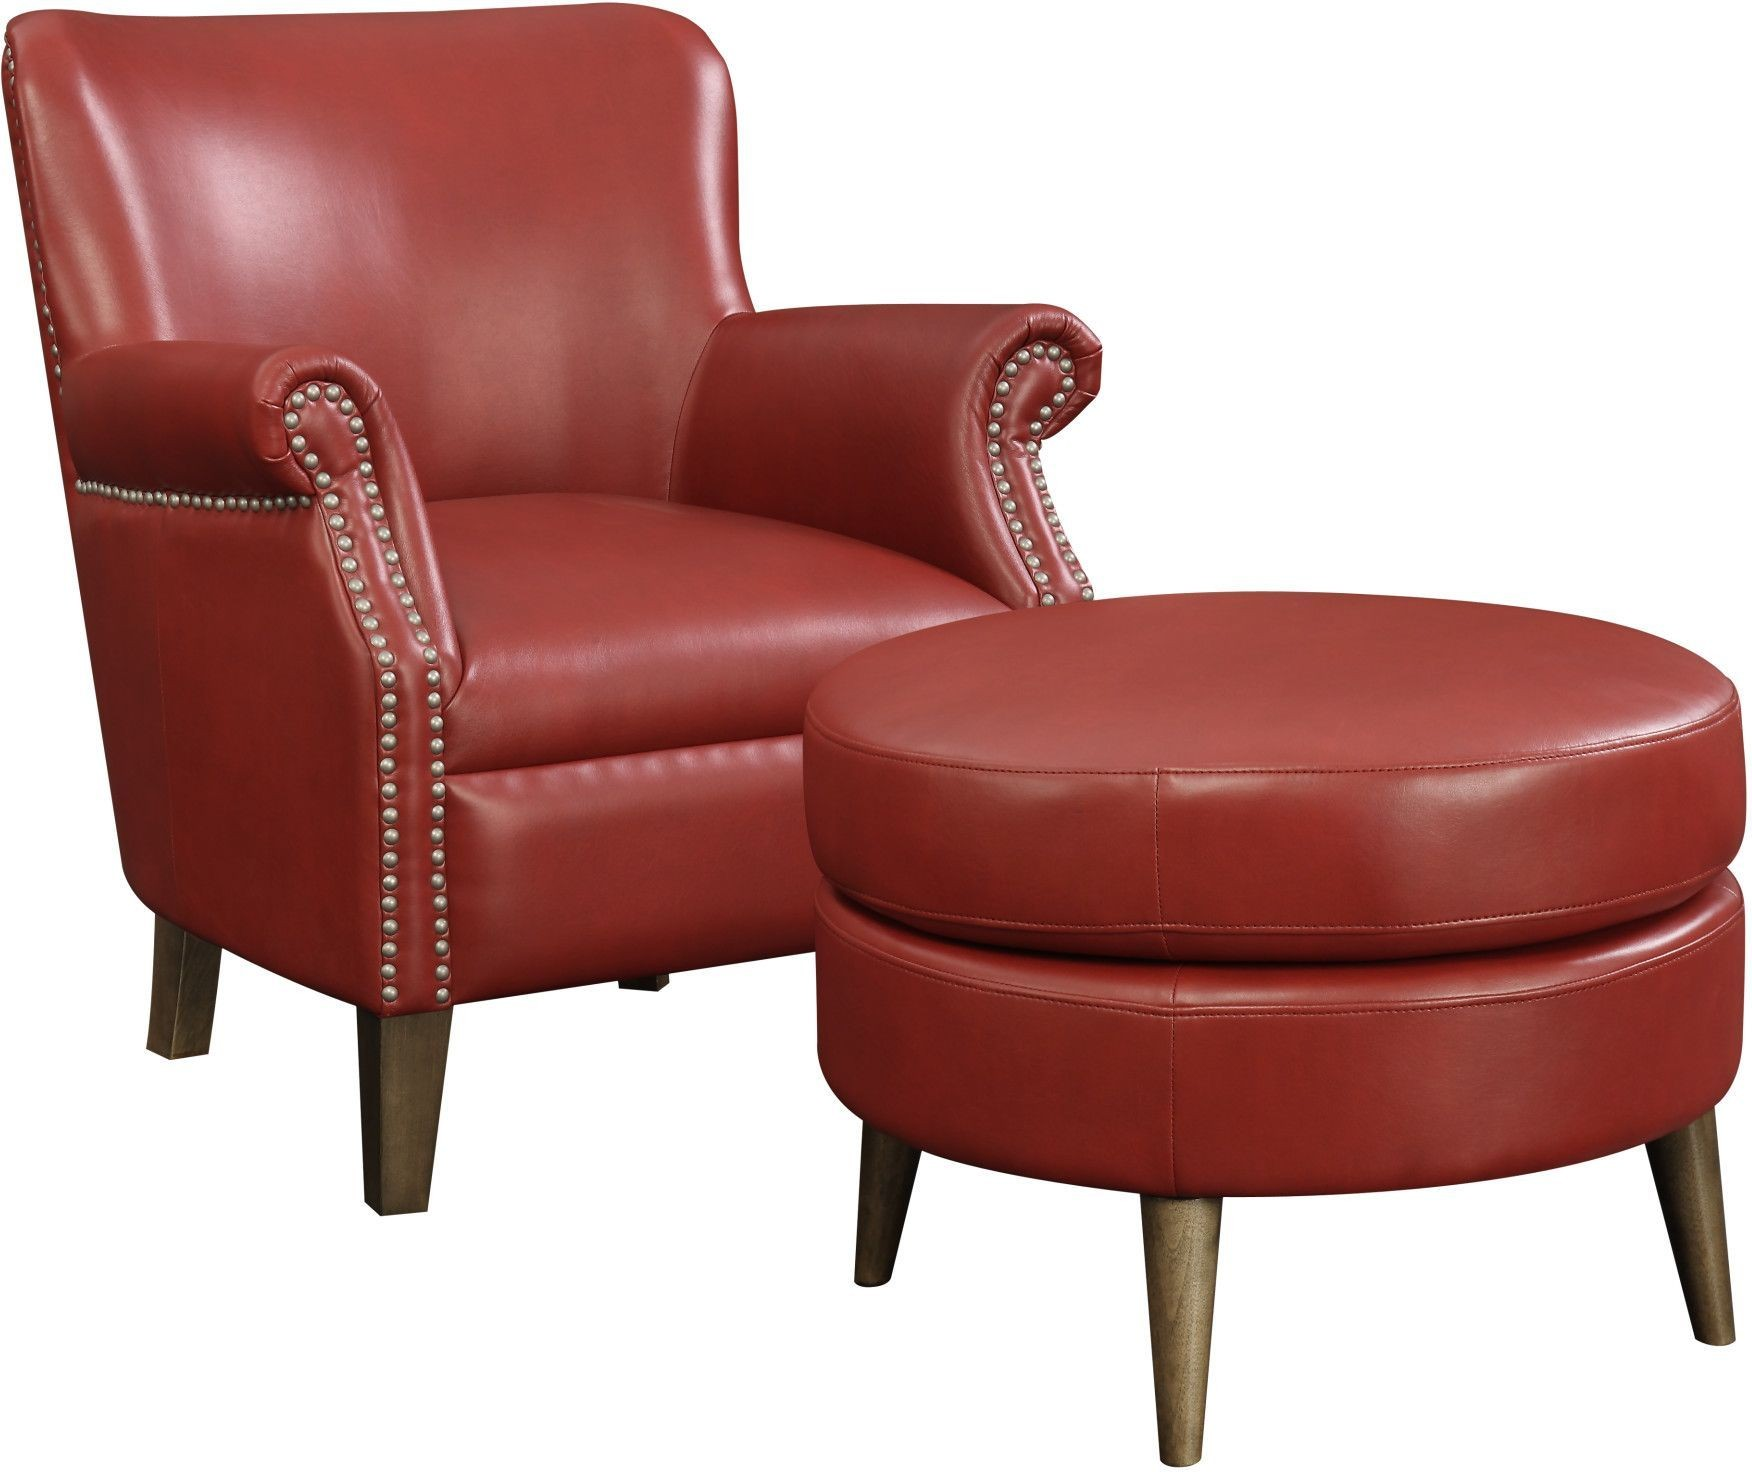 Red And White Accent Chair Oscar Red Accent Chair And Ottoman From Emerald Home